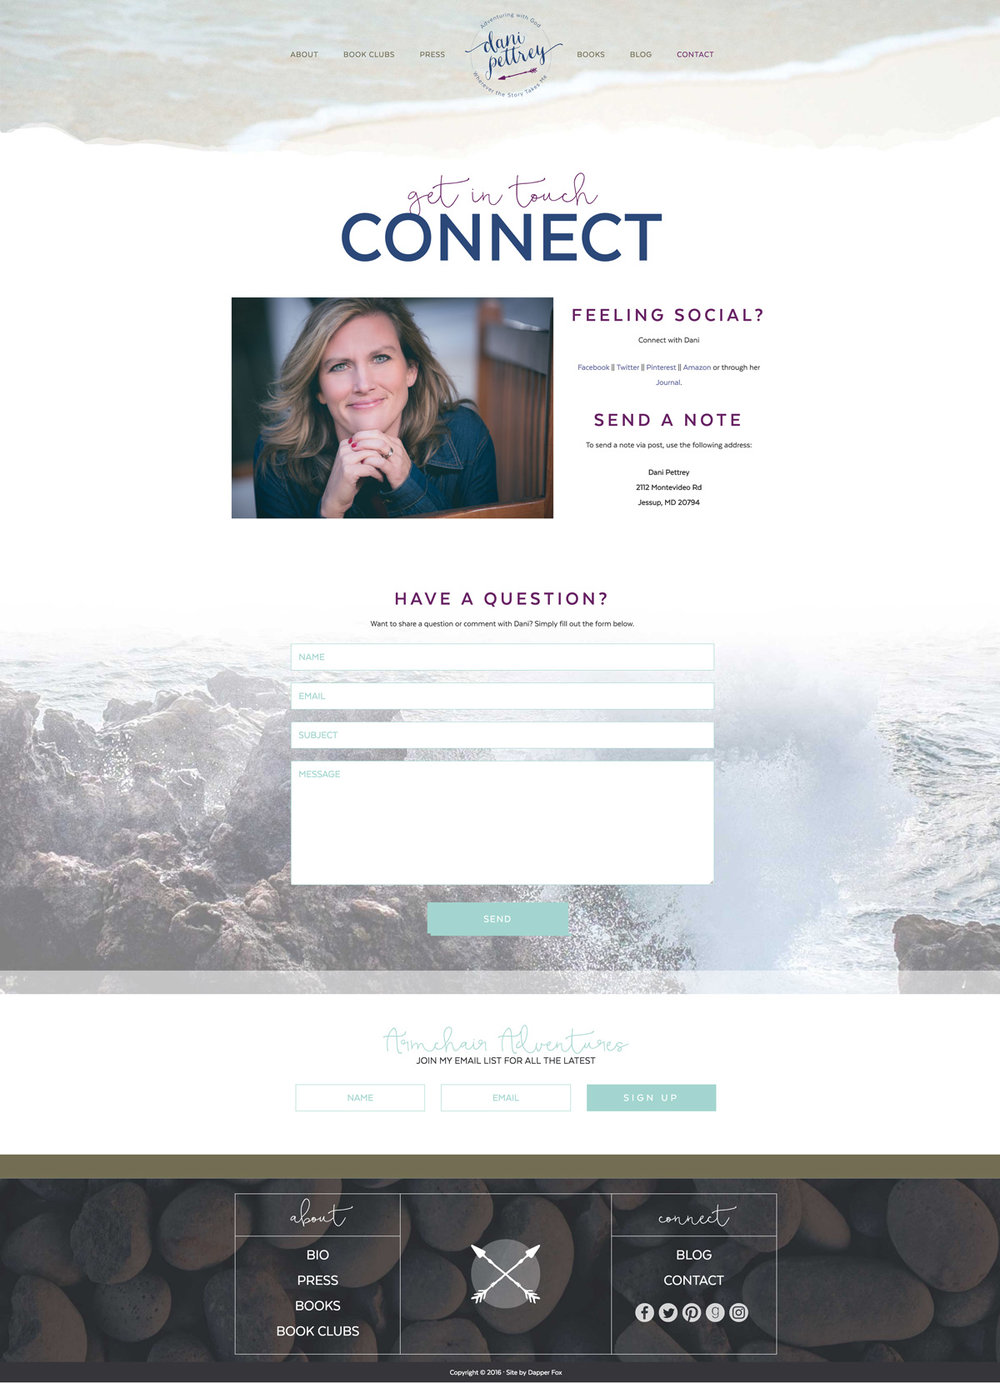 Dani Pettrey Award Winning Book Author Wordpress Website and Branding Design #Coastal #Beach #Ocean #Design #Modern